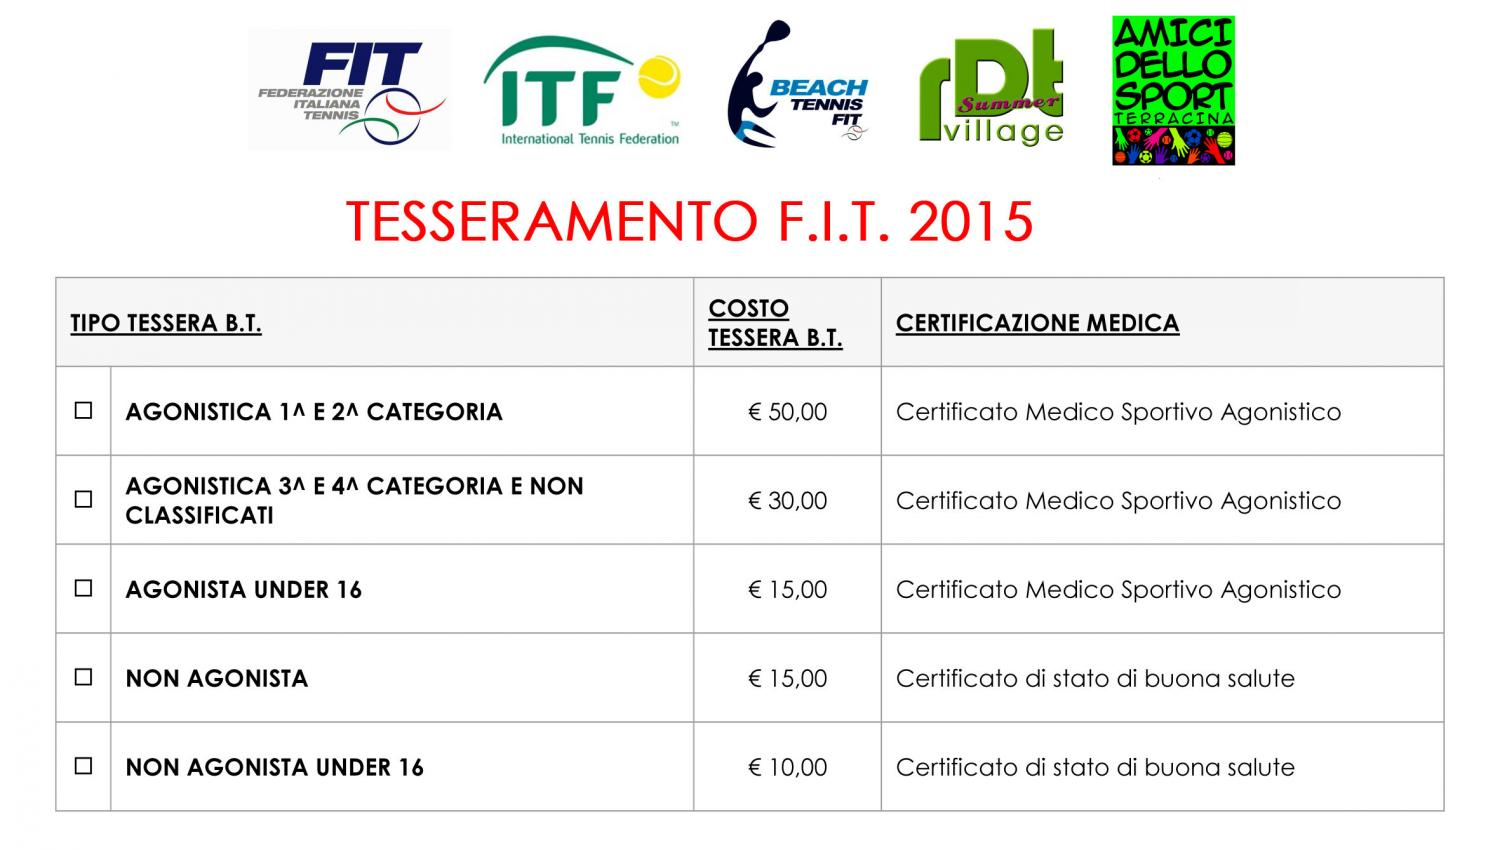 beach tennis - richiesta tesseramento fit 2015-1